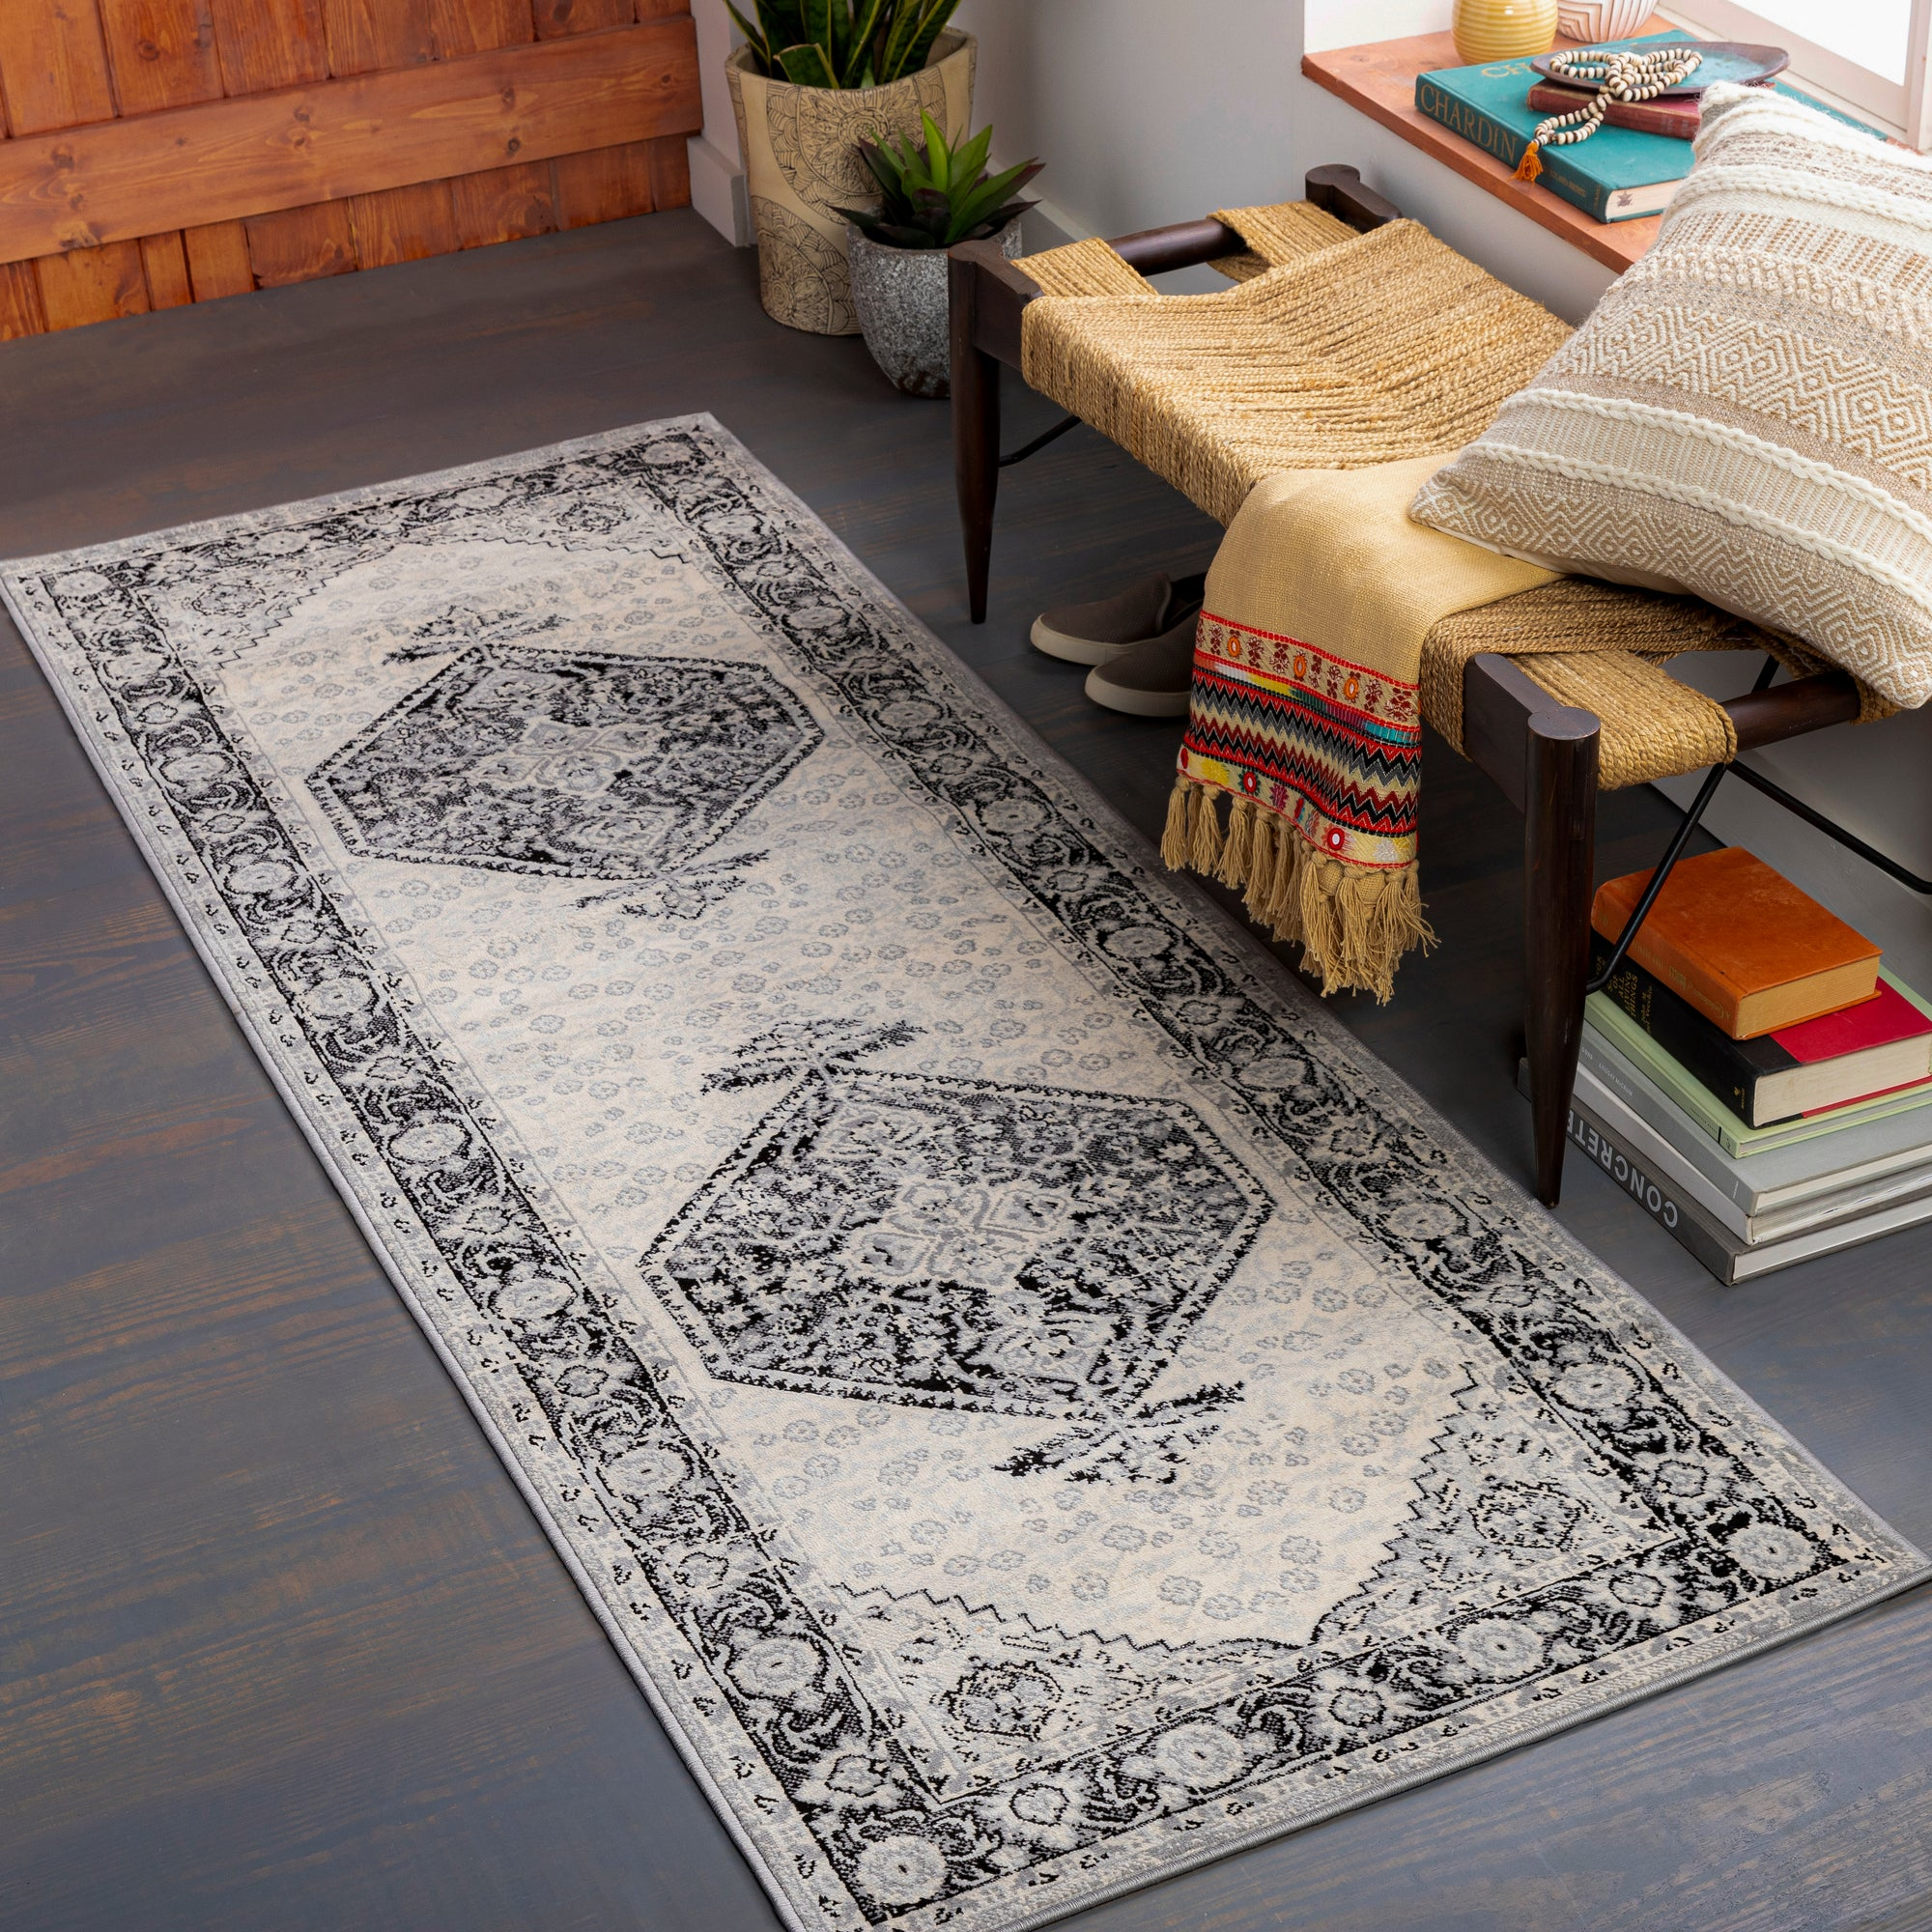 Best of Surya Area Rugs